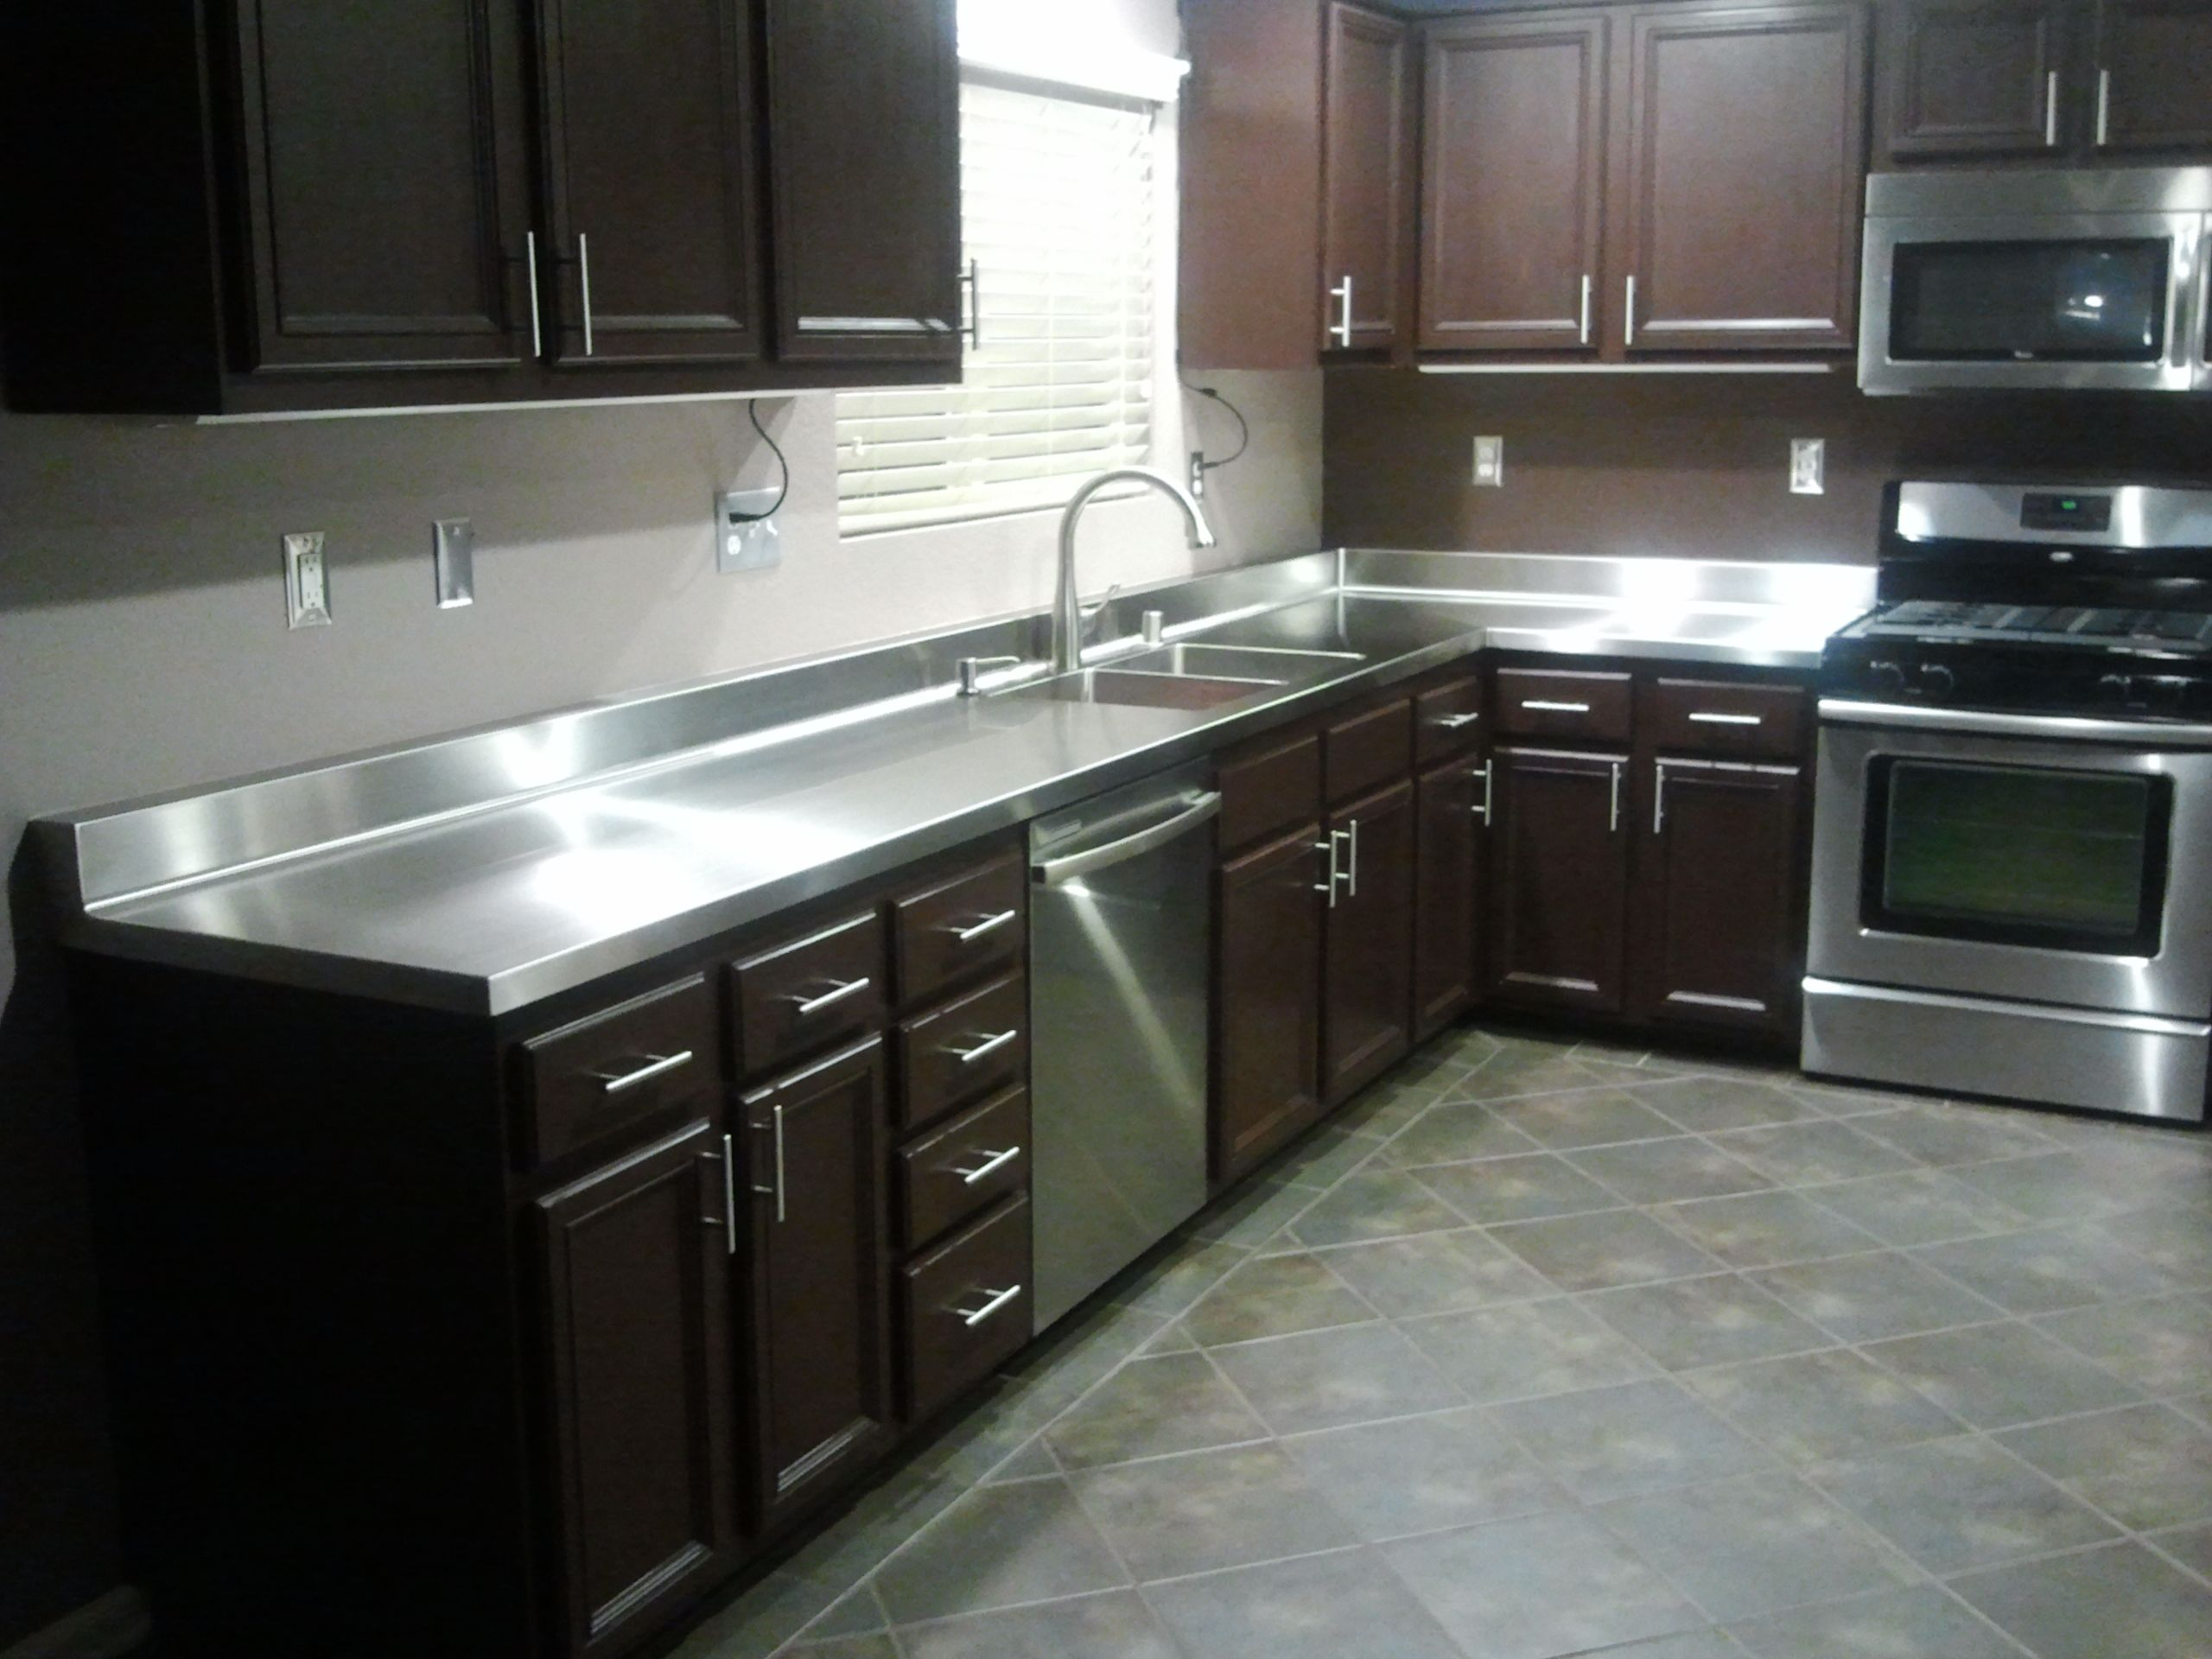 black metal kitchen cabinets home depot floor tile stainless steel countertops 2560x1920 fab wright inc